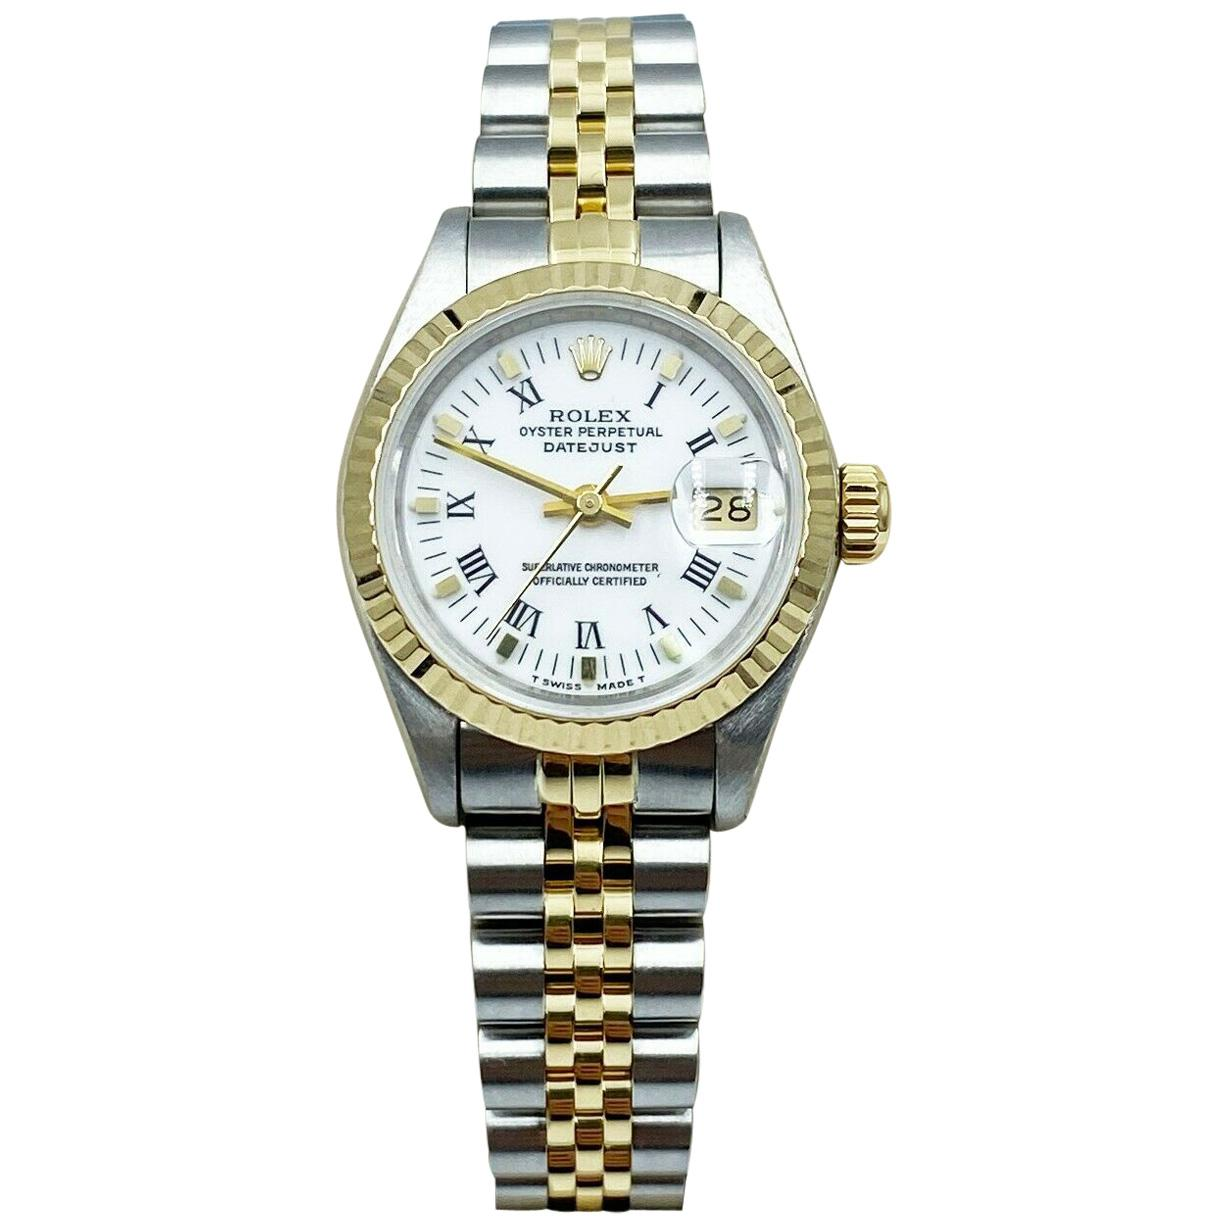 Rolex Ladies Datejust 69173 White Roman Dial 18K Yellow Gold Stainless Steel